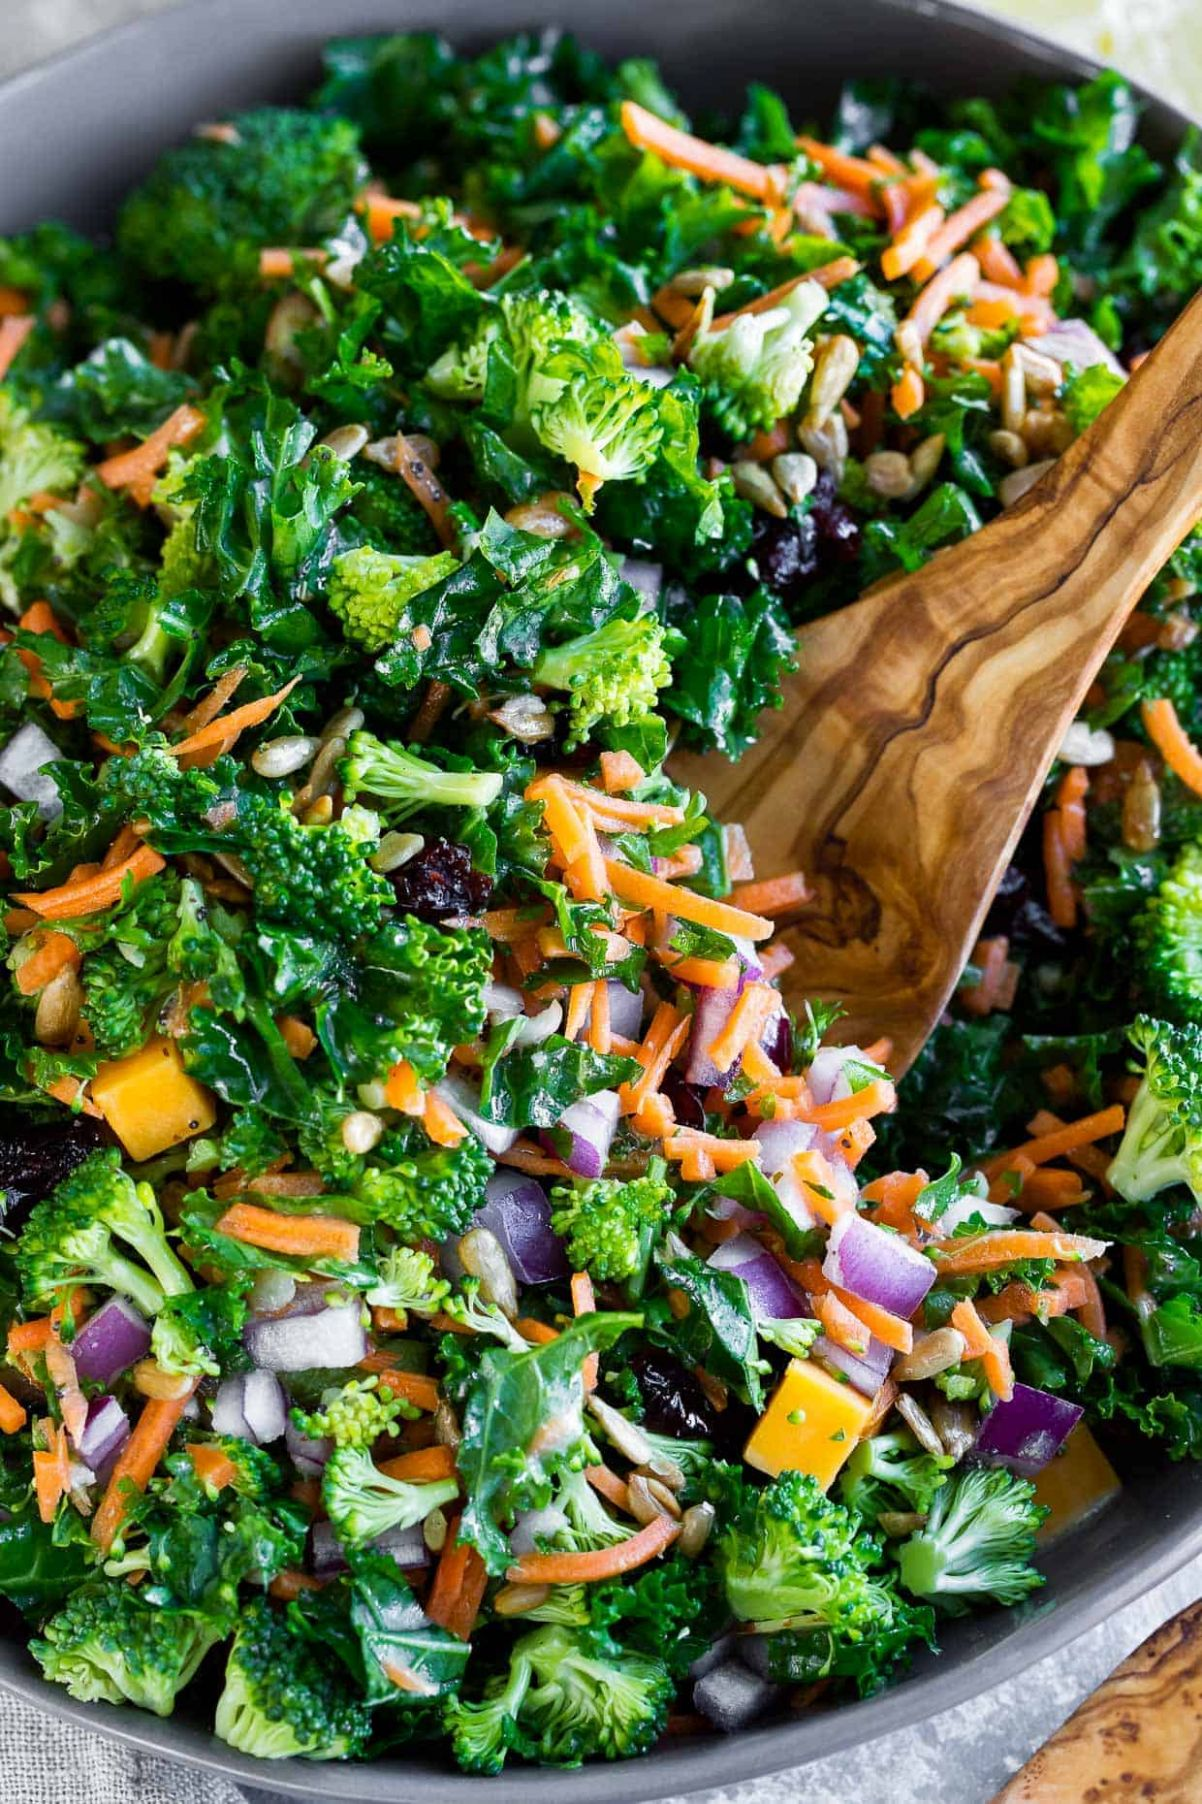 Easy Kale Salad with Fresh Lemon Dressing - Salad Recipes Light